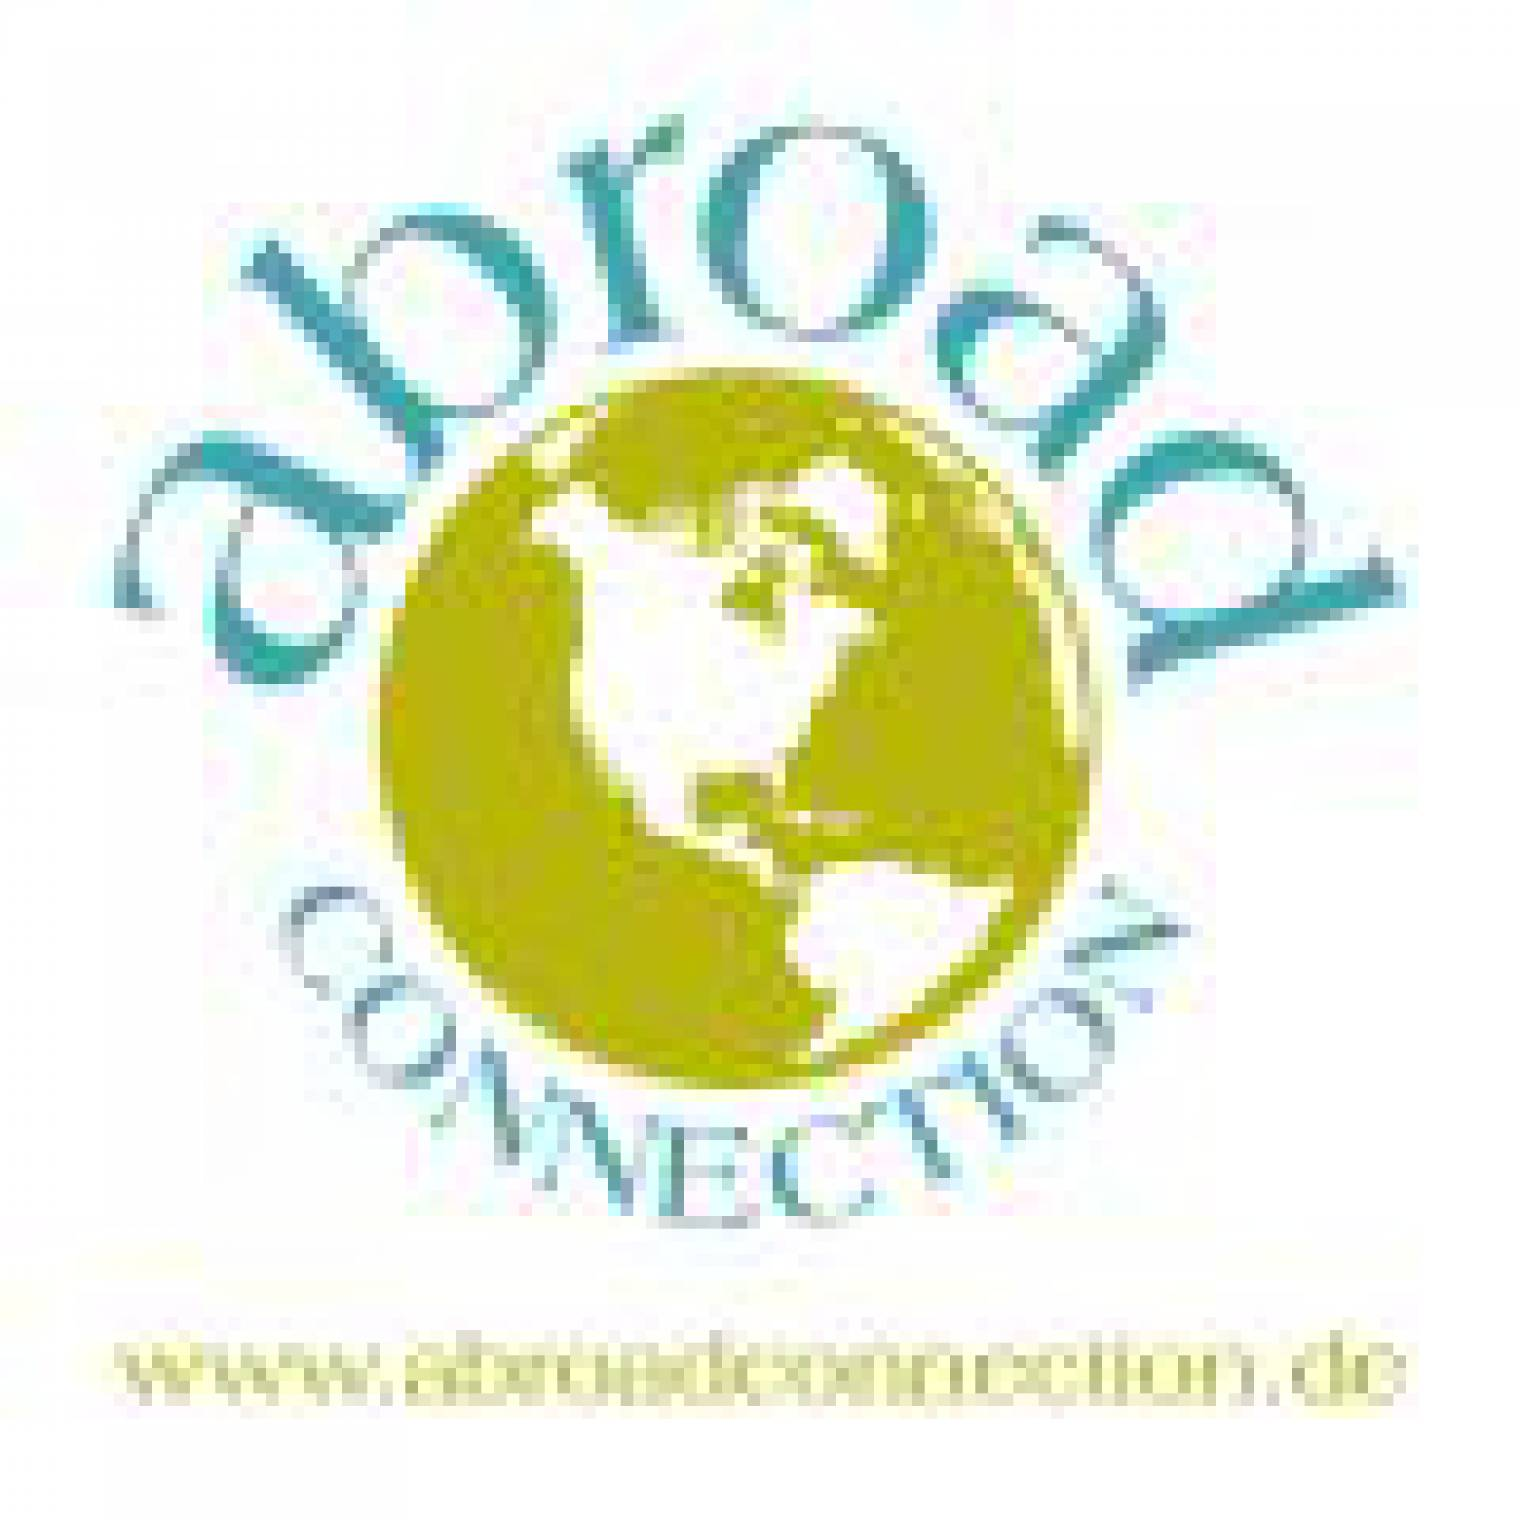 Welcome to our latest Full member AbroadConnection Germany